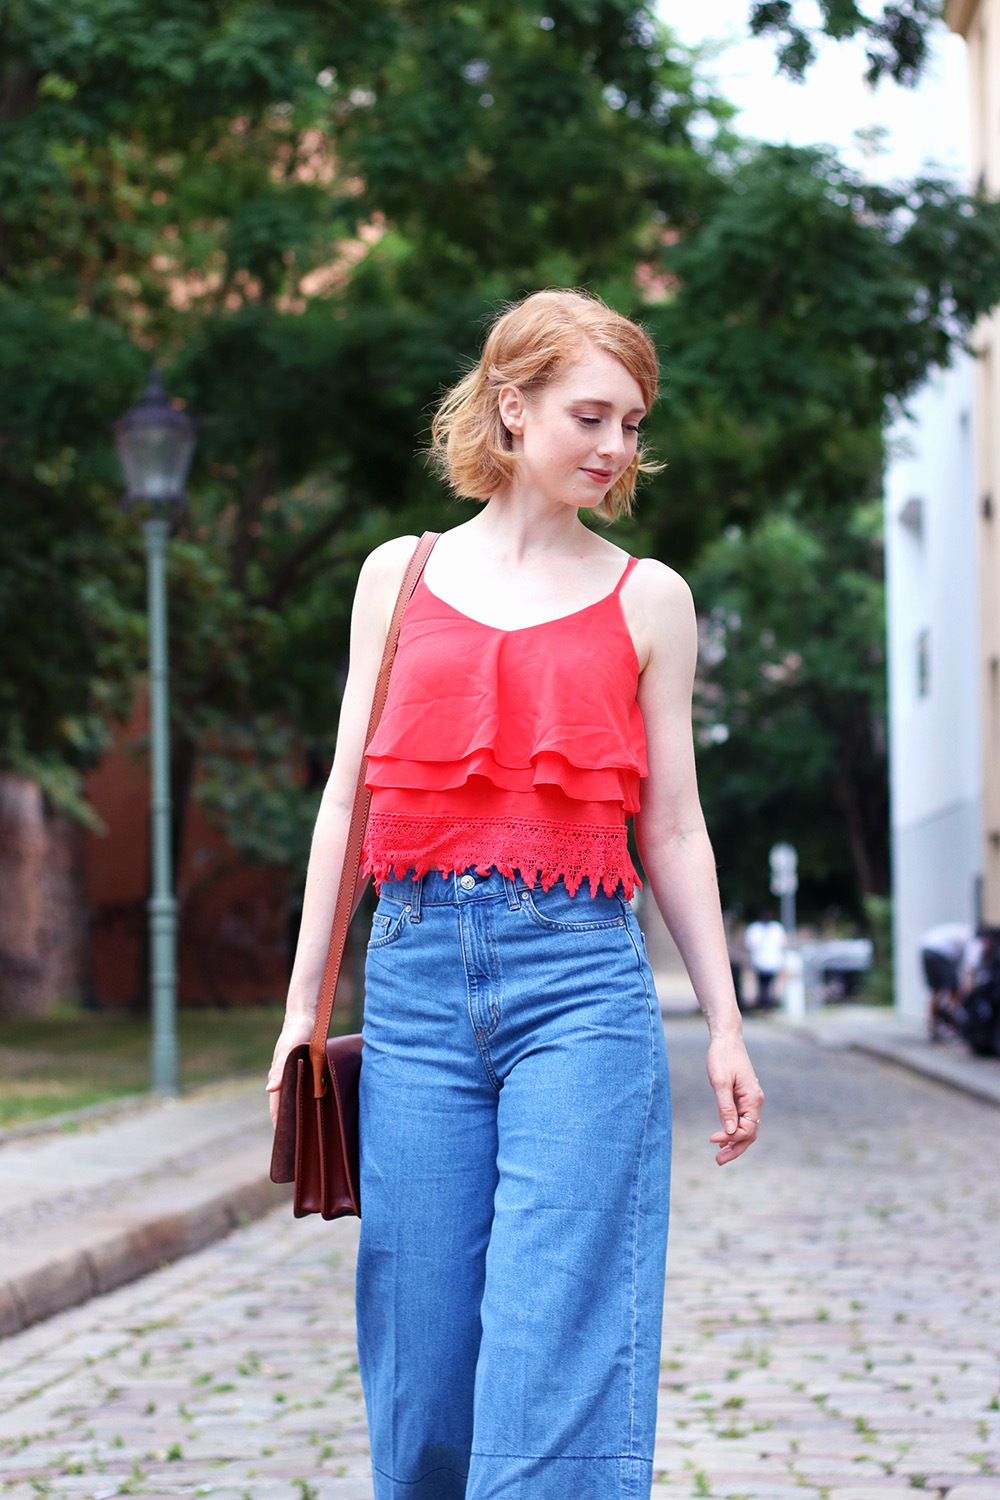 rotes cropped Top, Jeans Culotte, Hose, Sommer Look, Outfit, Tipps, Streetstyle, Modetipps, Finde deinen Stil, Influencer, Deutschland, Berlin, Mode Blog, Modeblog, Advance Your Style, advanceyourstyle